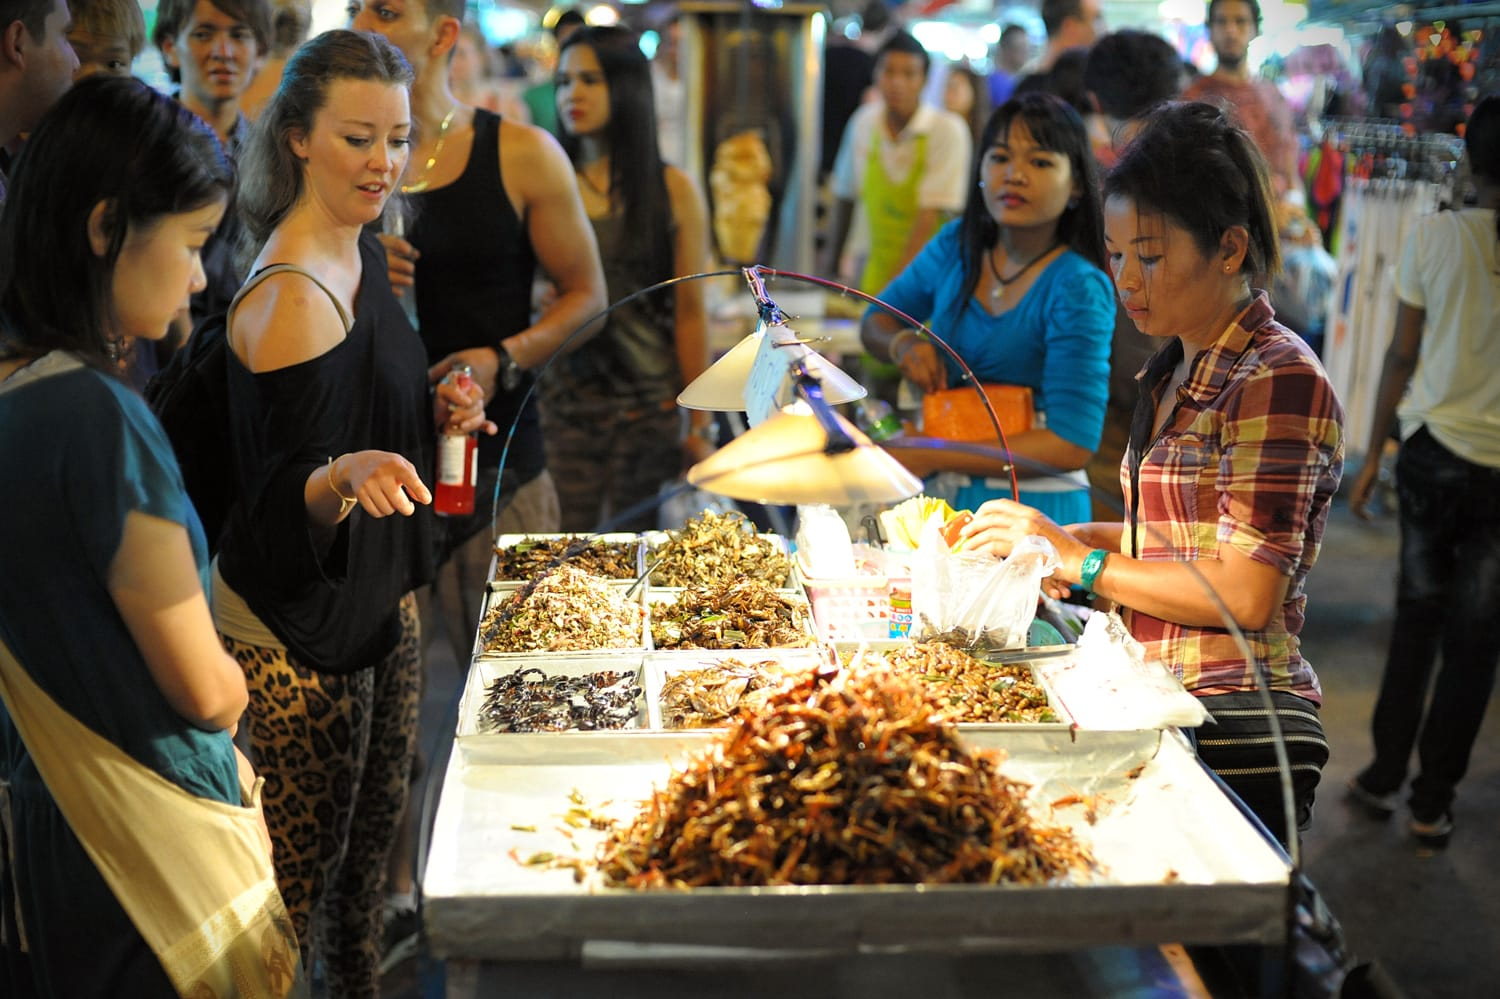 A street vendor sells fried insects to tourists on Khao San Road in Bangkok Thailand